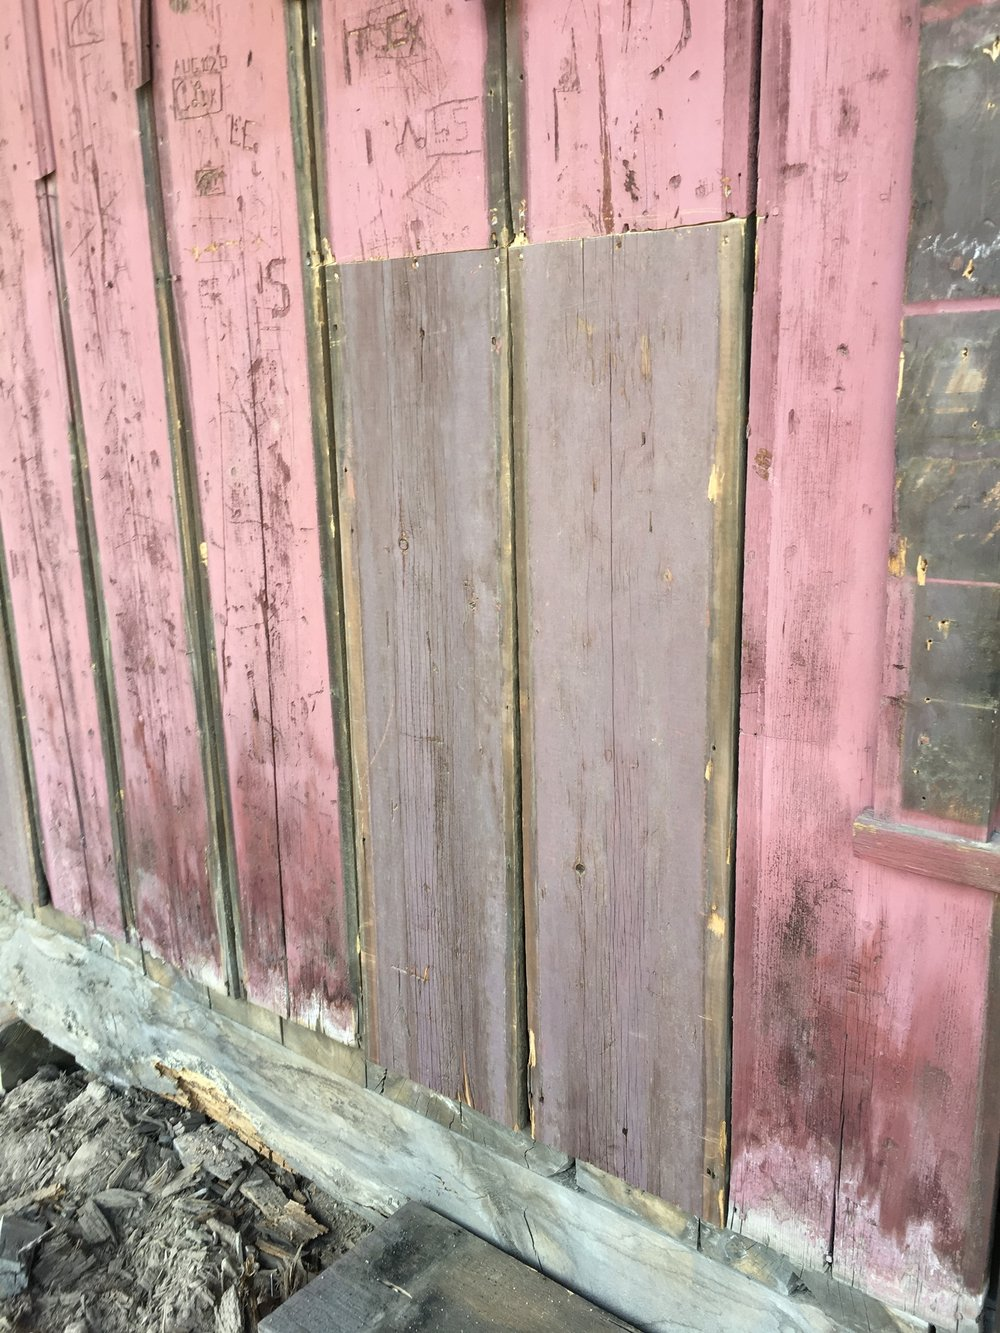 We uncovered the original color of the building from underneath a 20th Century addition. Here you can see how the exposure of 10,200' and heavy winters faded the original purple of the depot into a barn red. We're bringing the purple back!